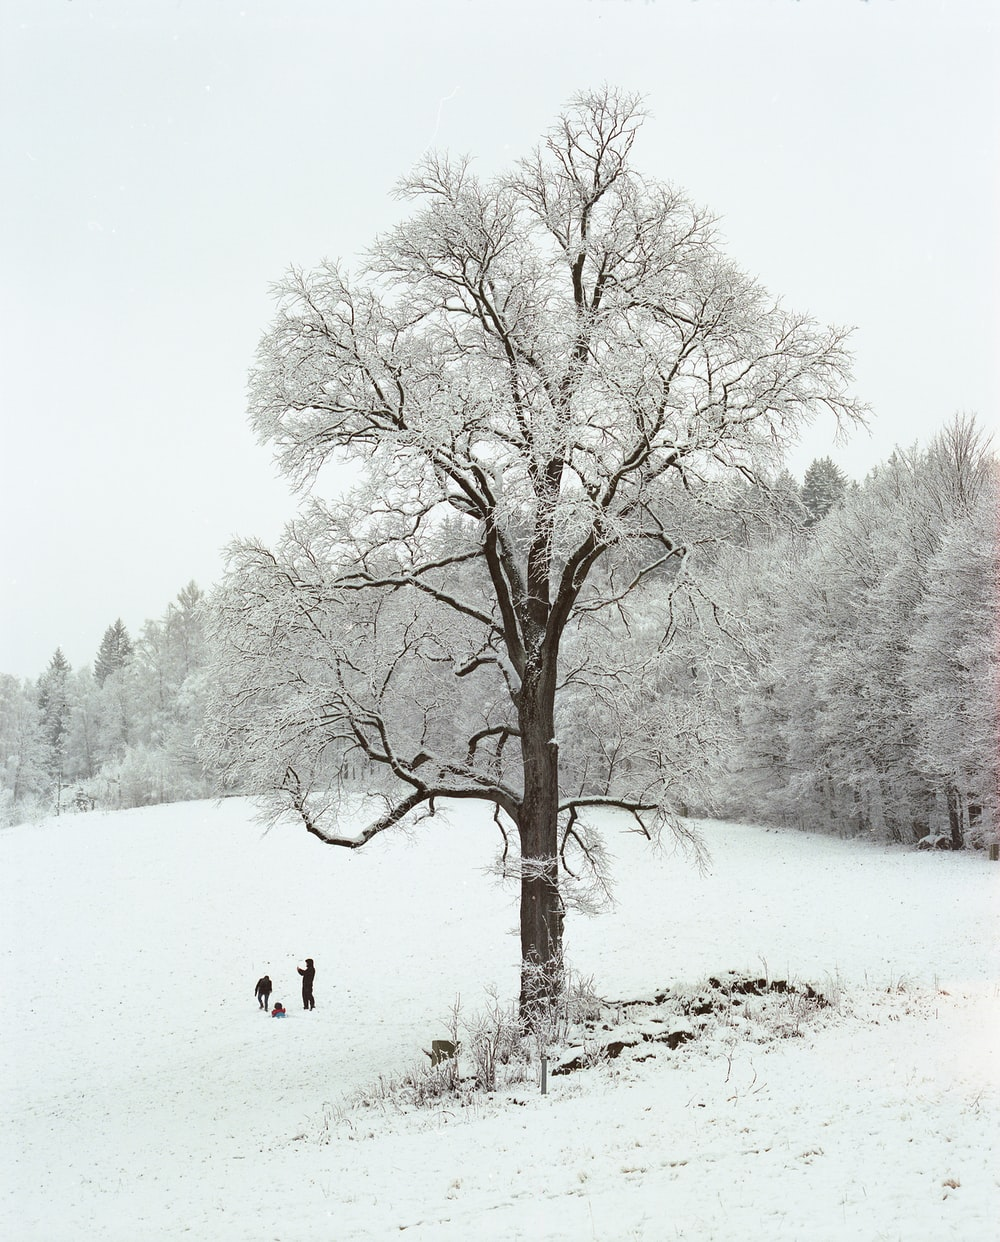 person walking on snow covered ground near bare trees during daytime